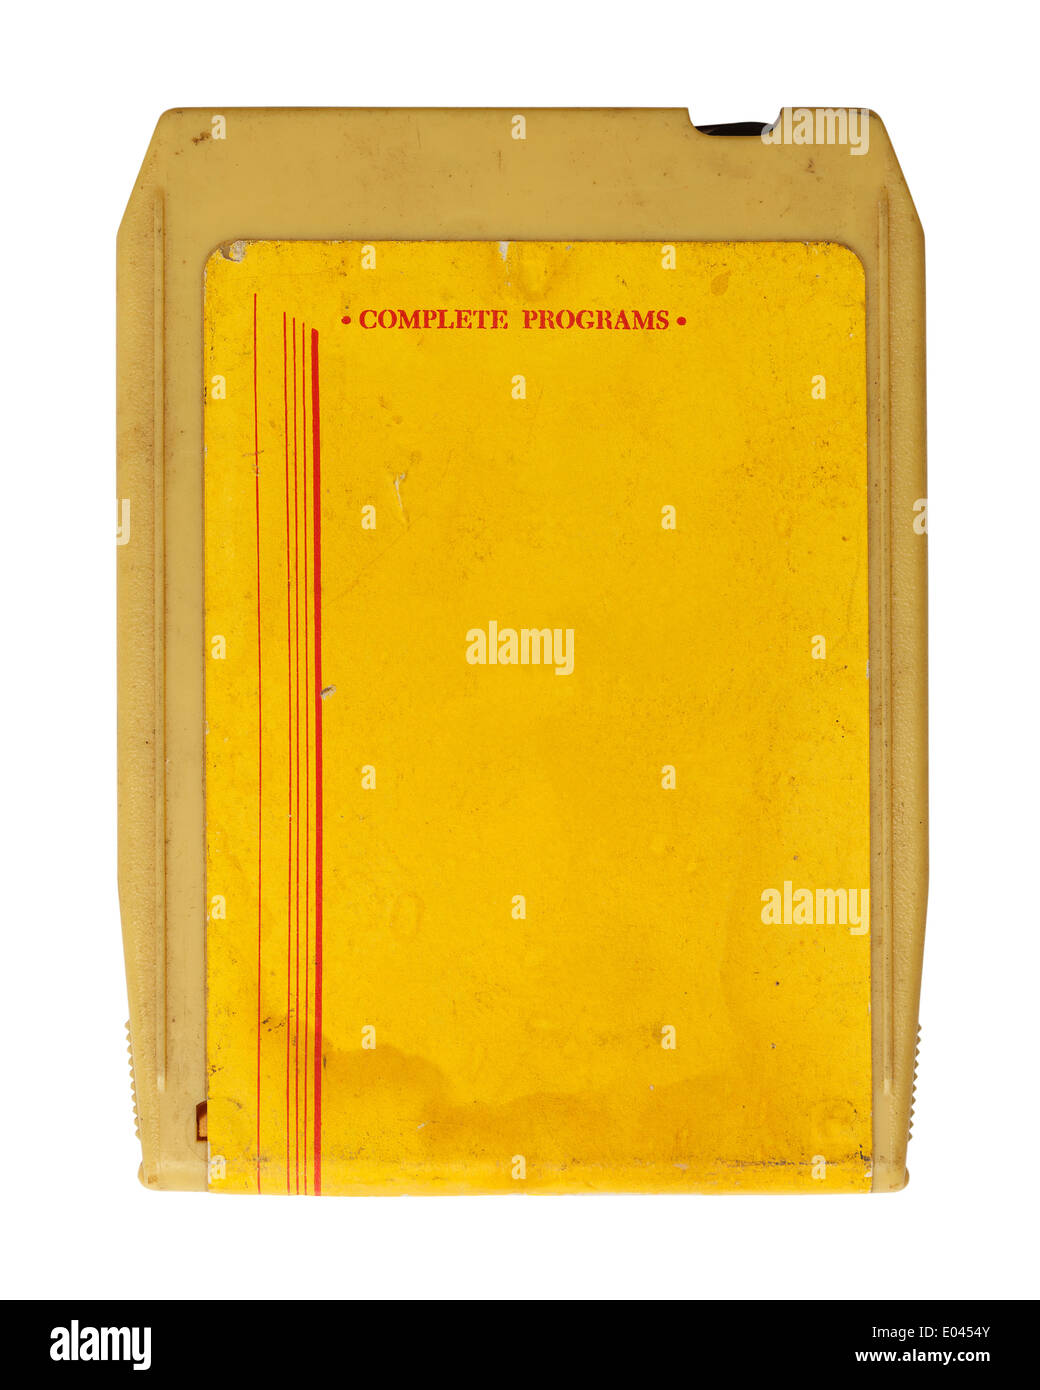 Yellow Retro Seventies Music Cassette Isolated on White Background. - Stock Image